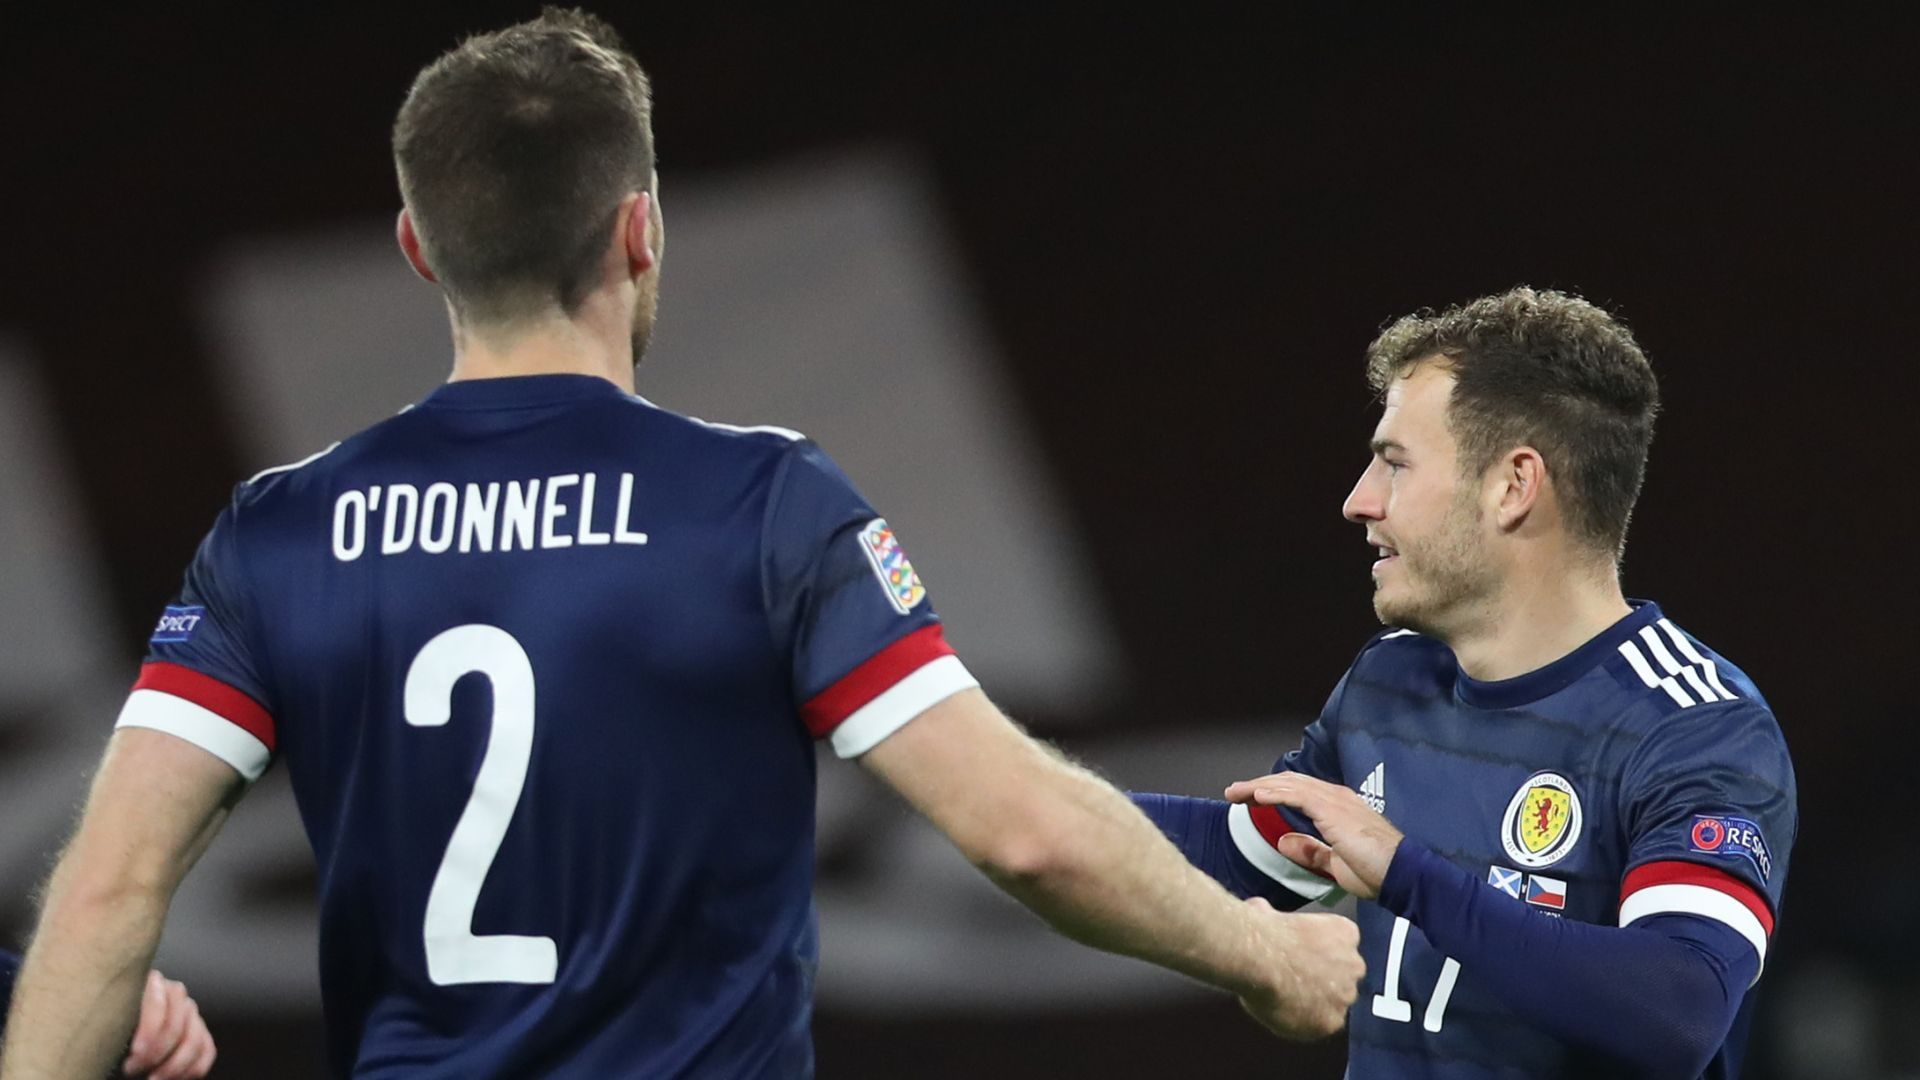 Scotland grind out win over Czechs to stay top